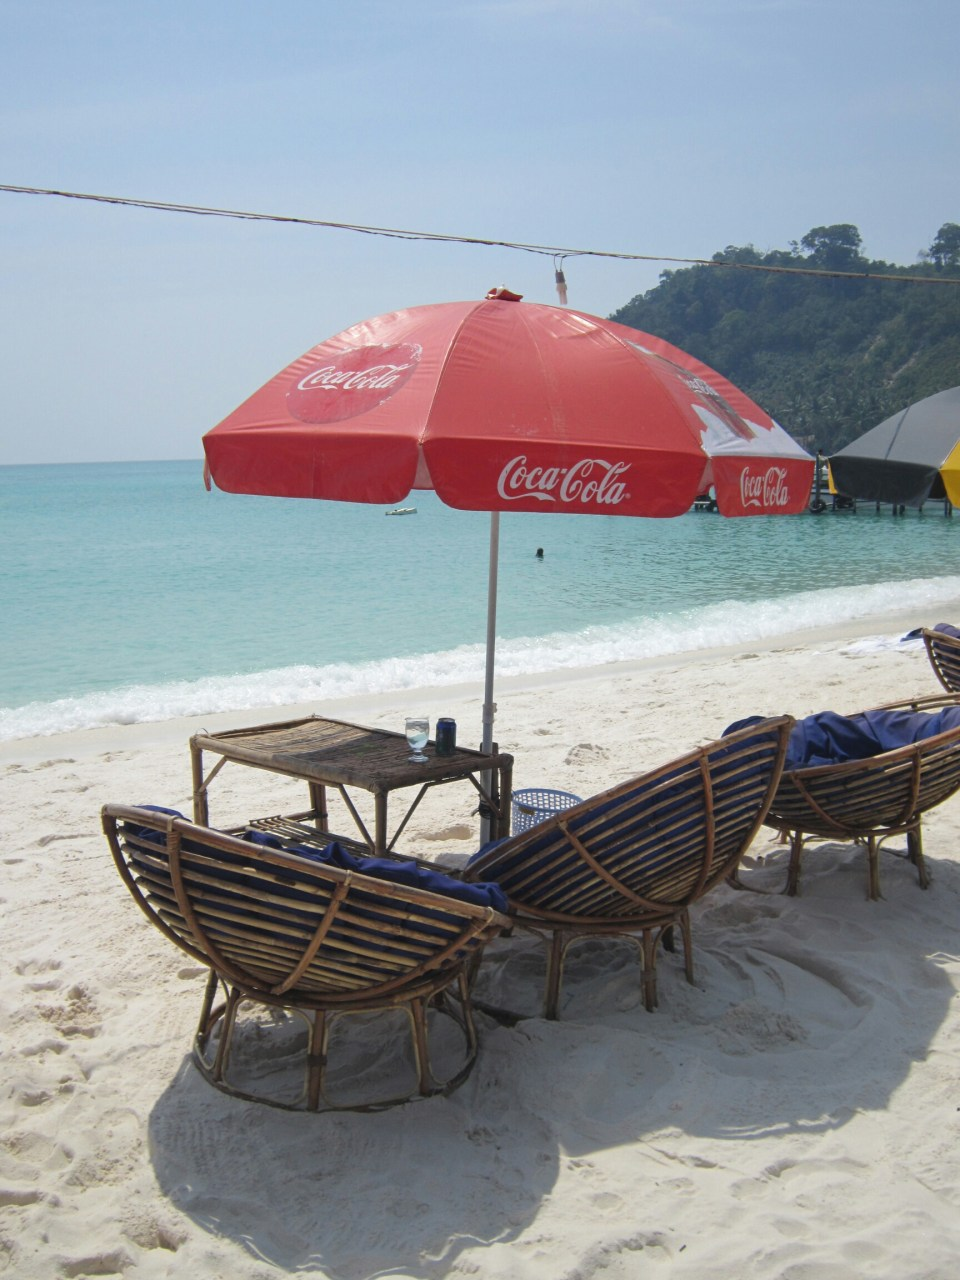 Beach chairs with umbrella for shade on the white sand Sok San beach, Koh Rong, Cambodia